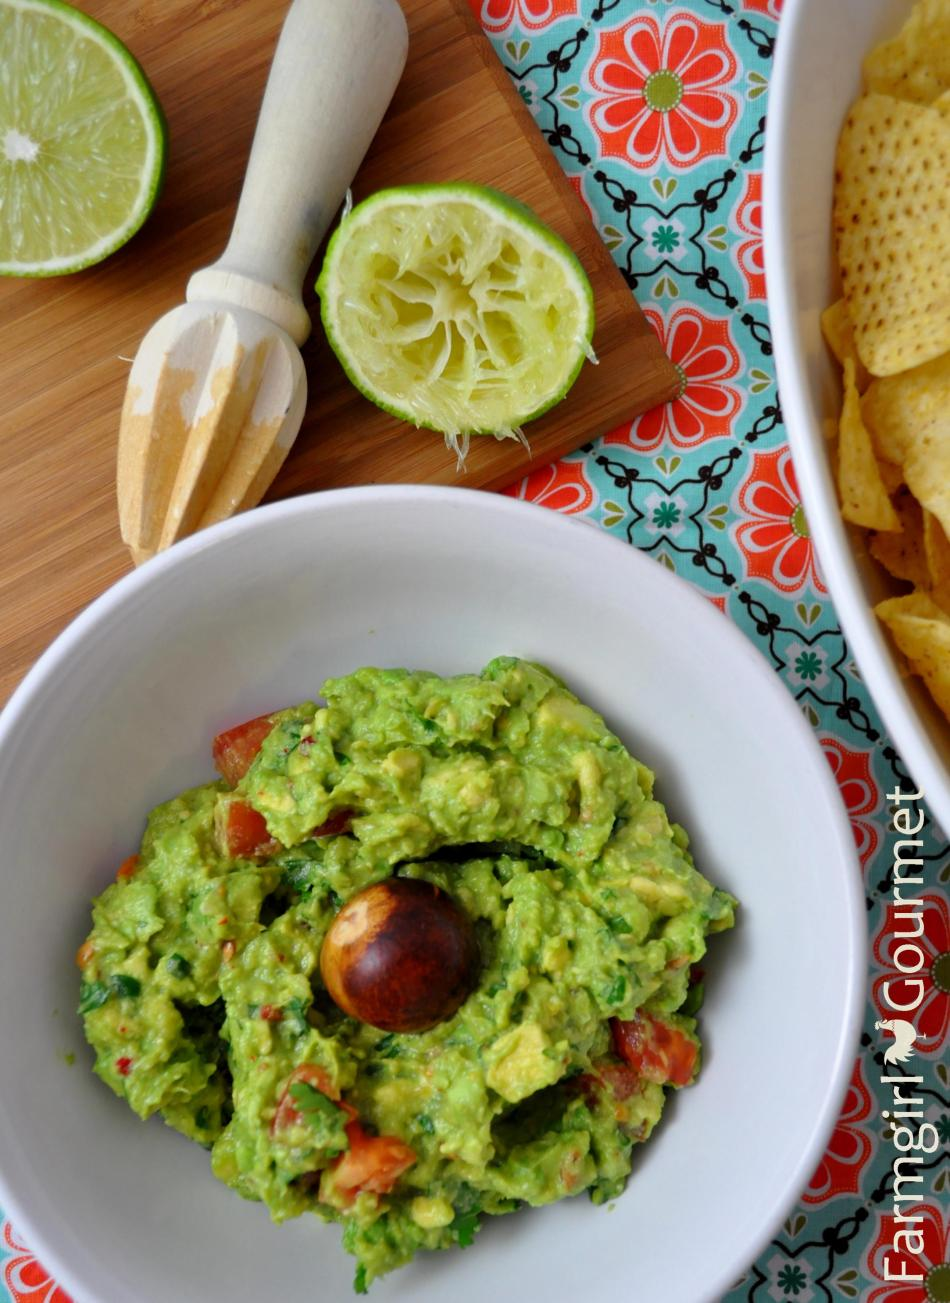 Simply Delicious Guacamole via Farmgirlgourmet